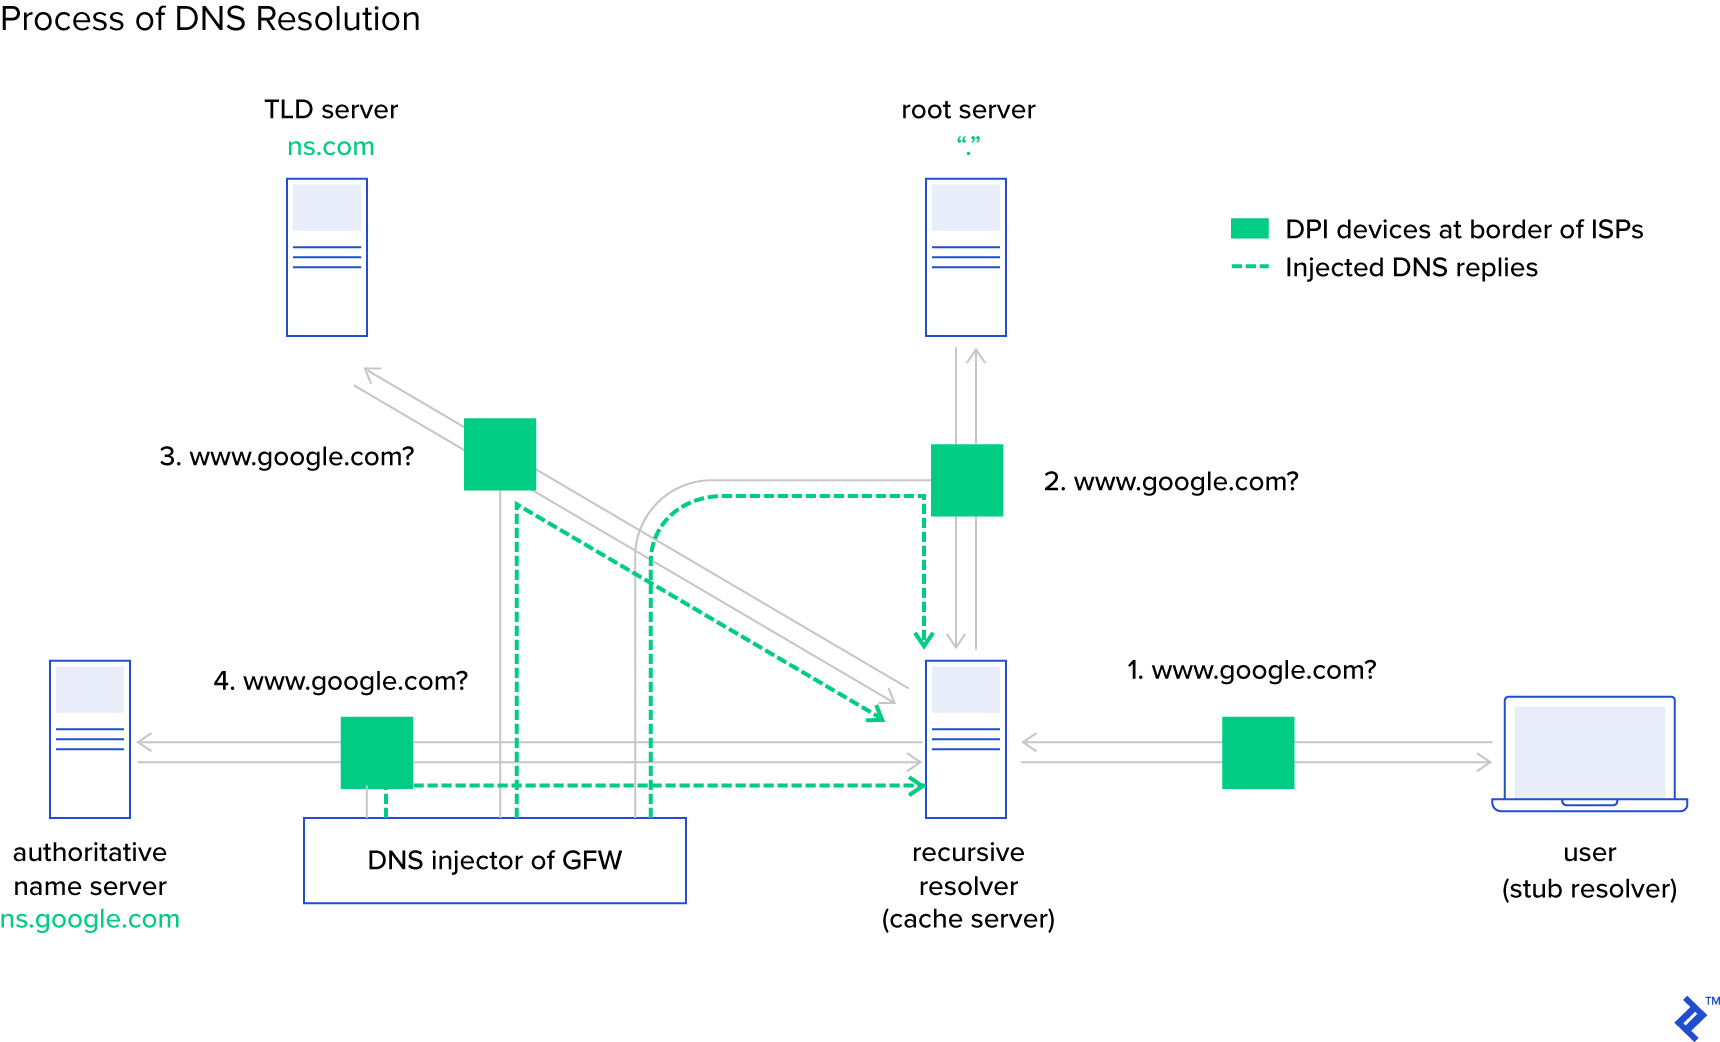 Diagram showing DNS interception as performed by the Great Firewall (GFW) as part of China's surveillance and censorship system. The GFW injector sits between the recursive resolver and the authoritative name server.